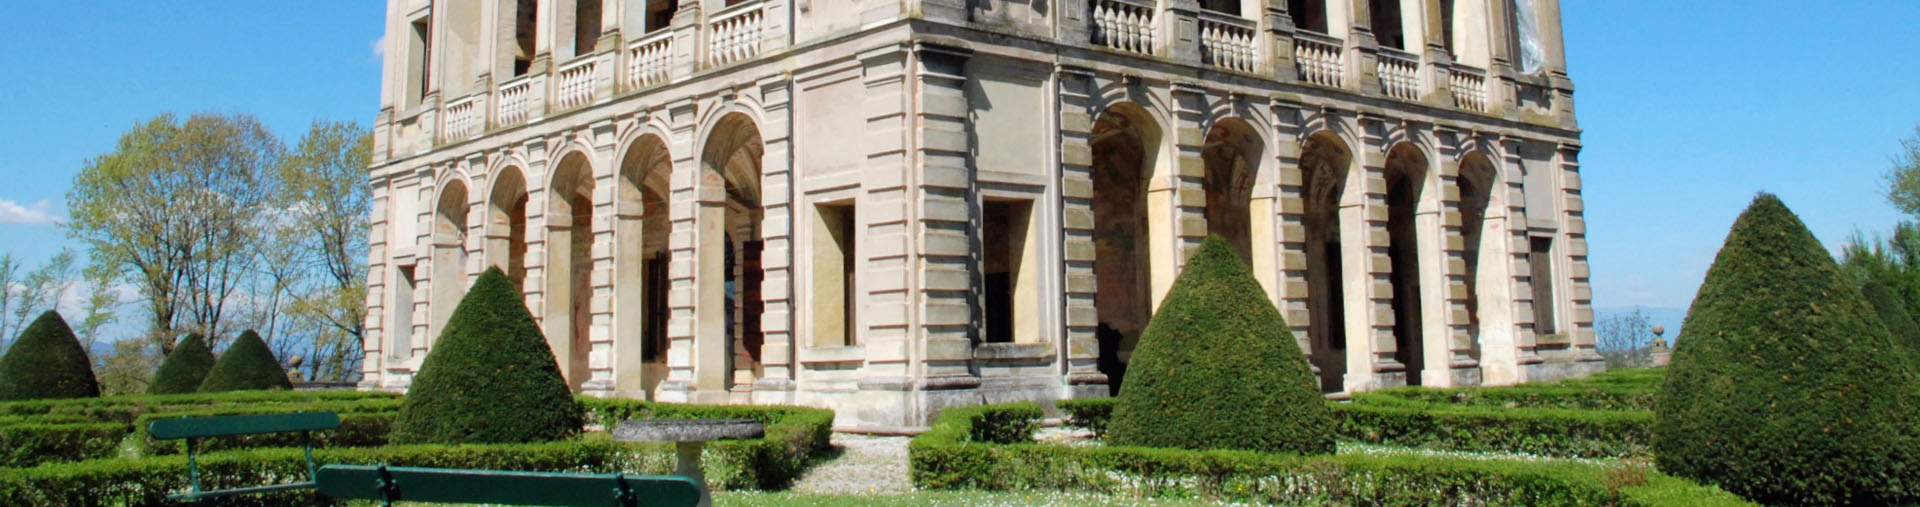 Villa Ireneo, Veneto|A princely period villa in the green heart of the Veneto